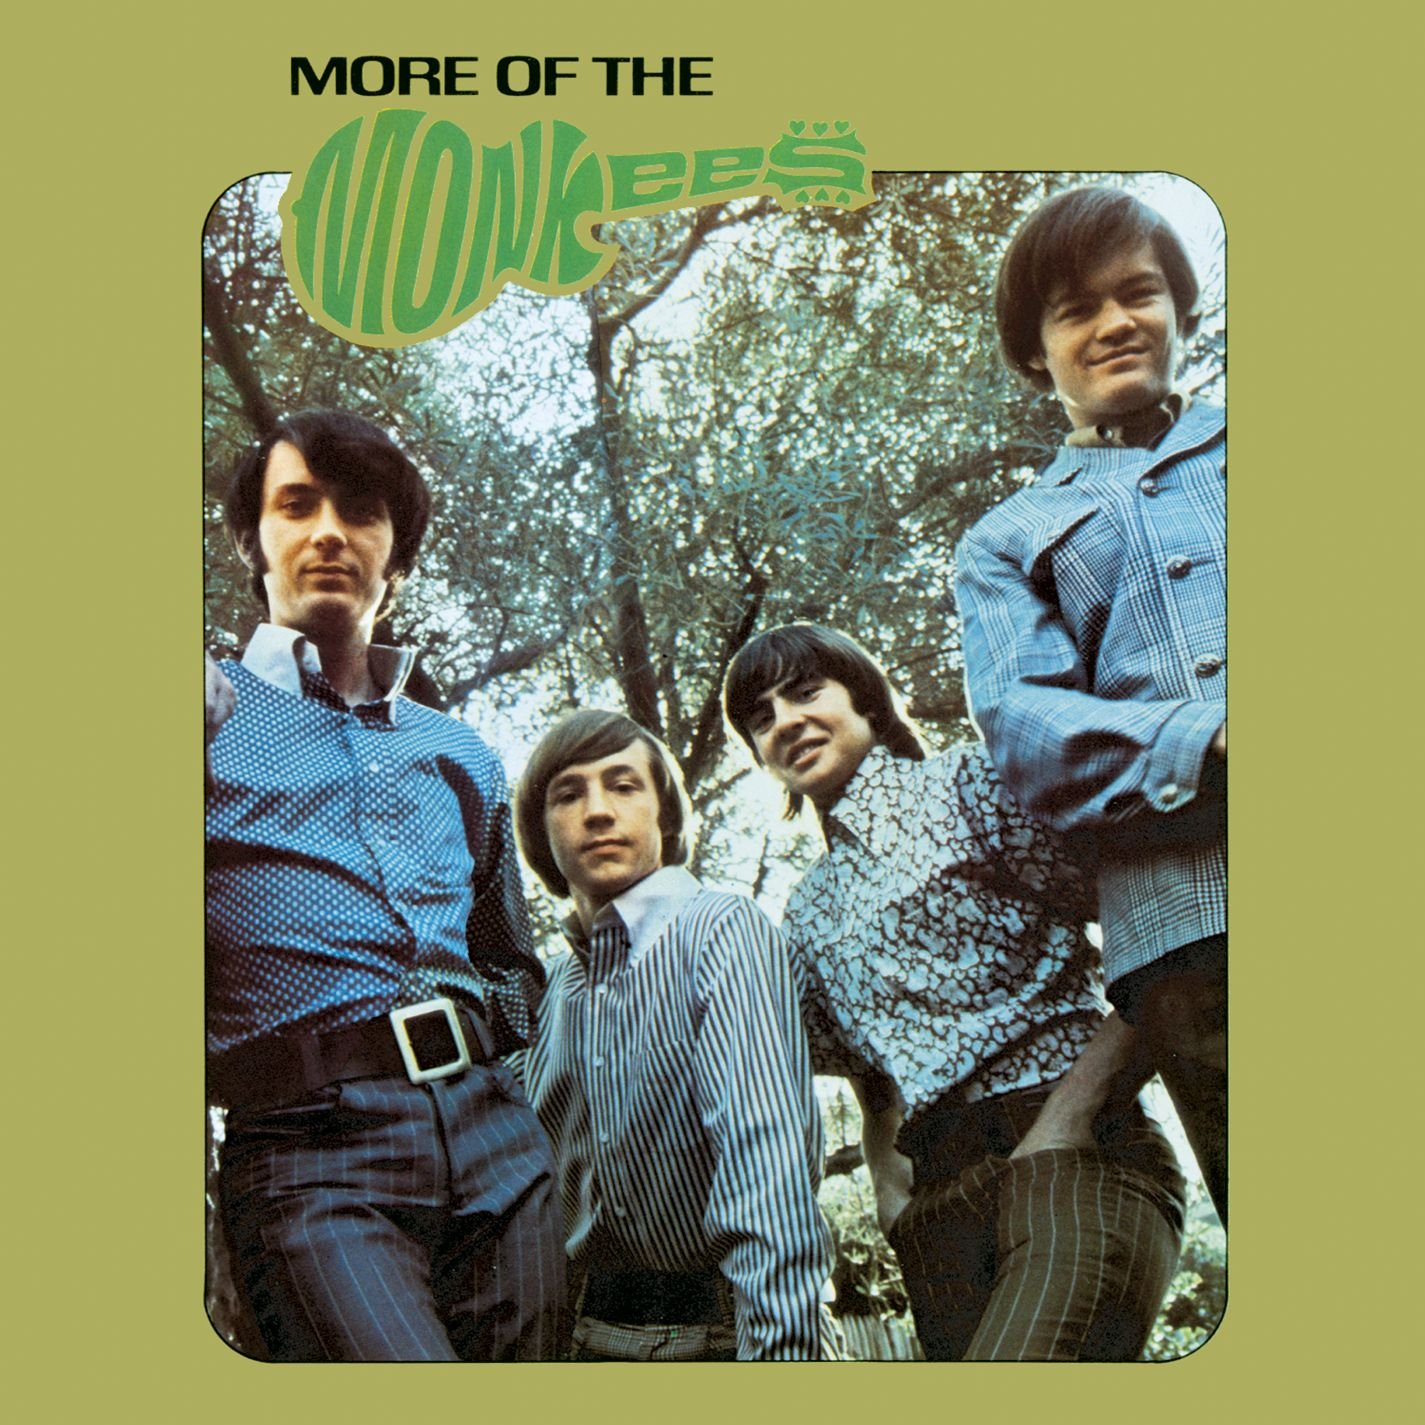 More Of The Monkees, The Monkees